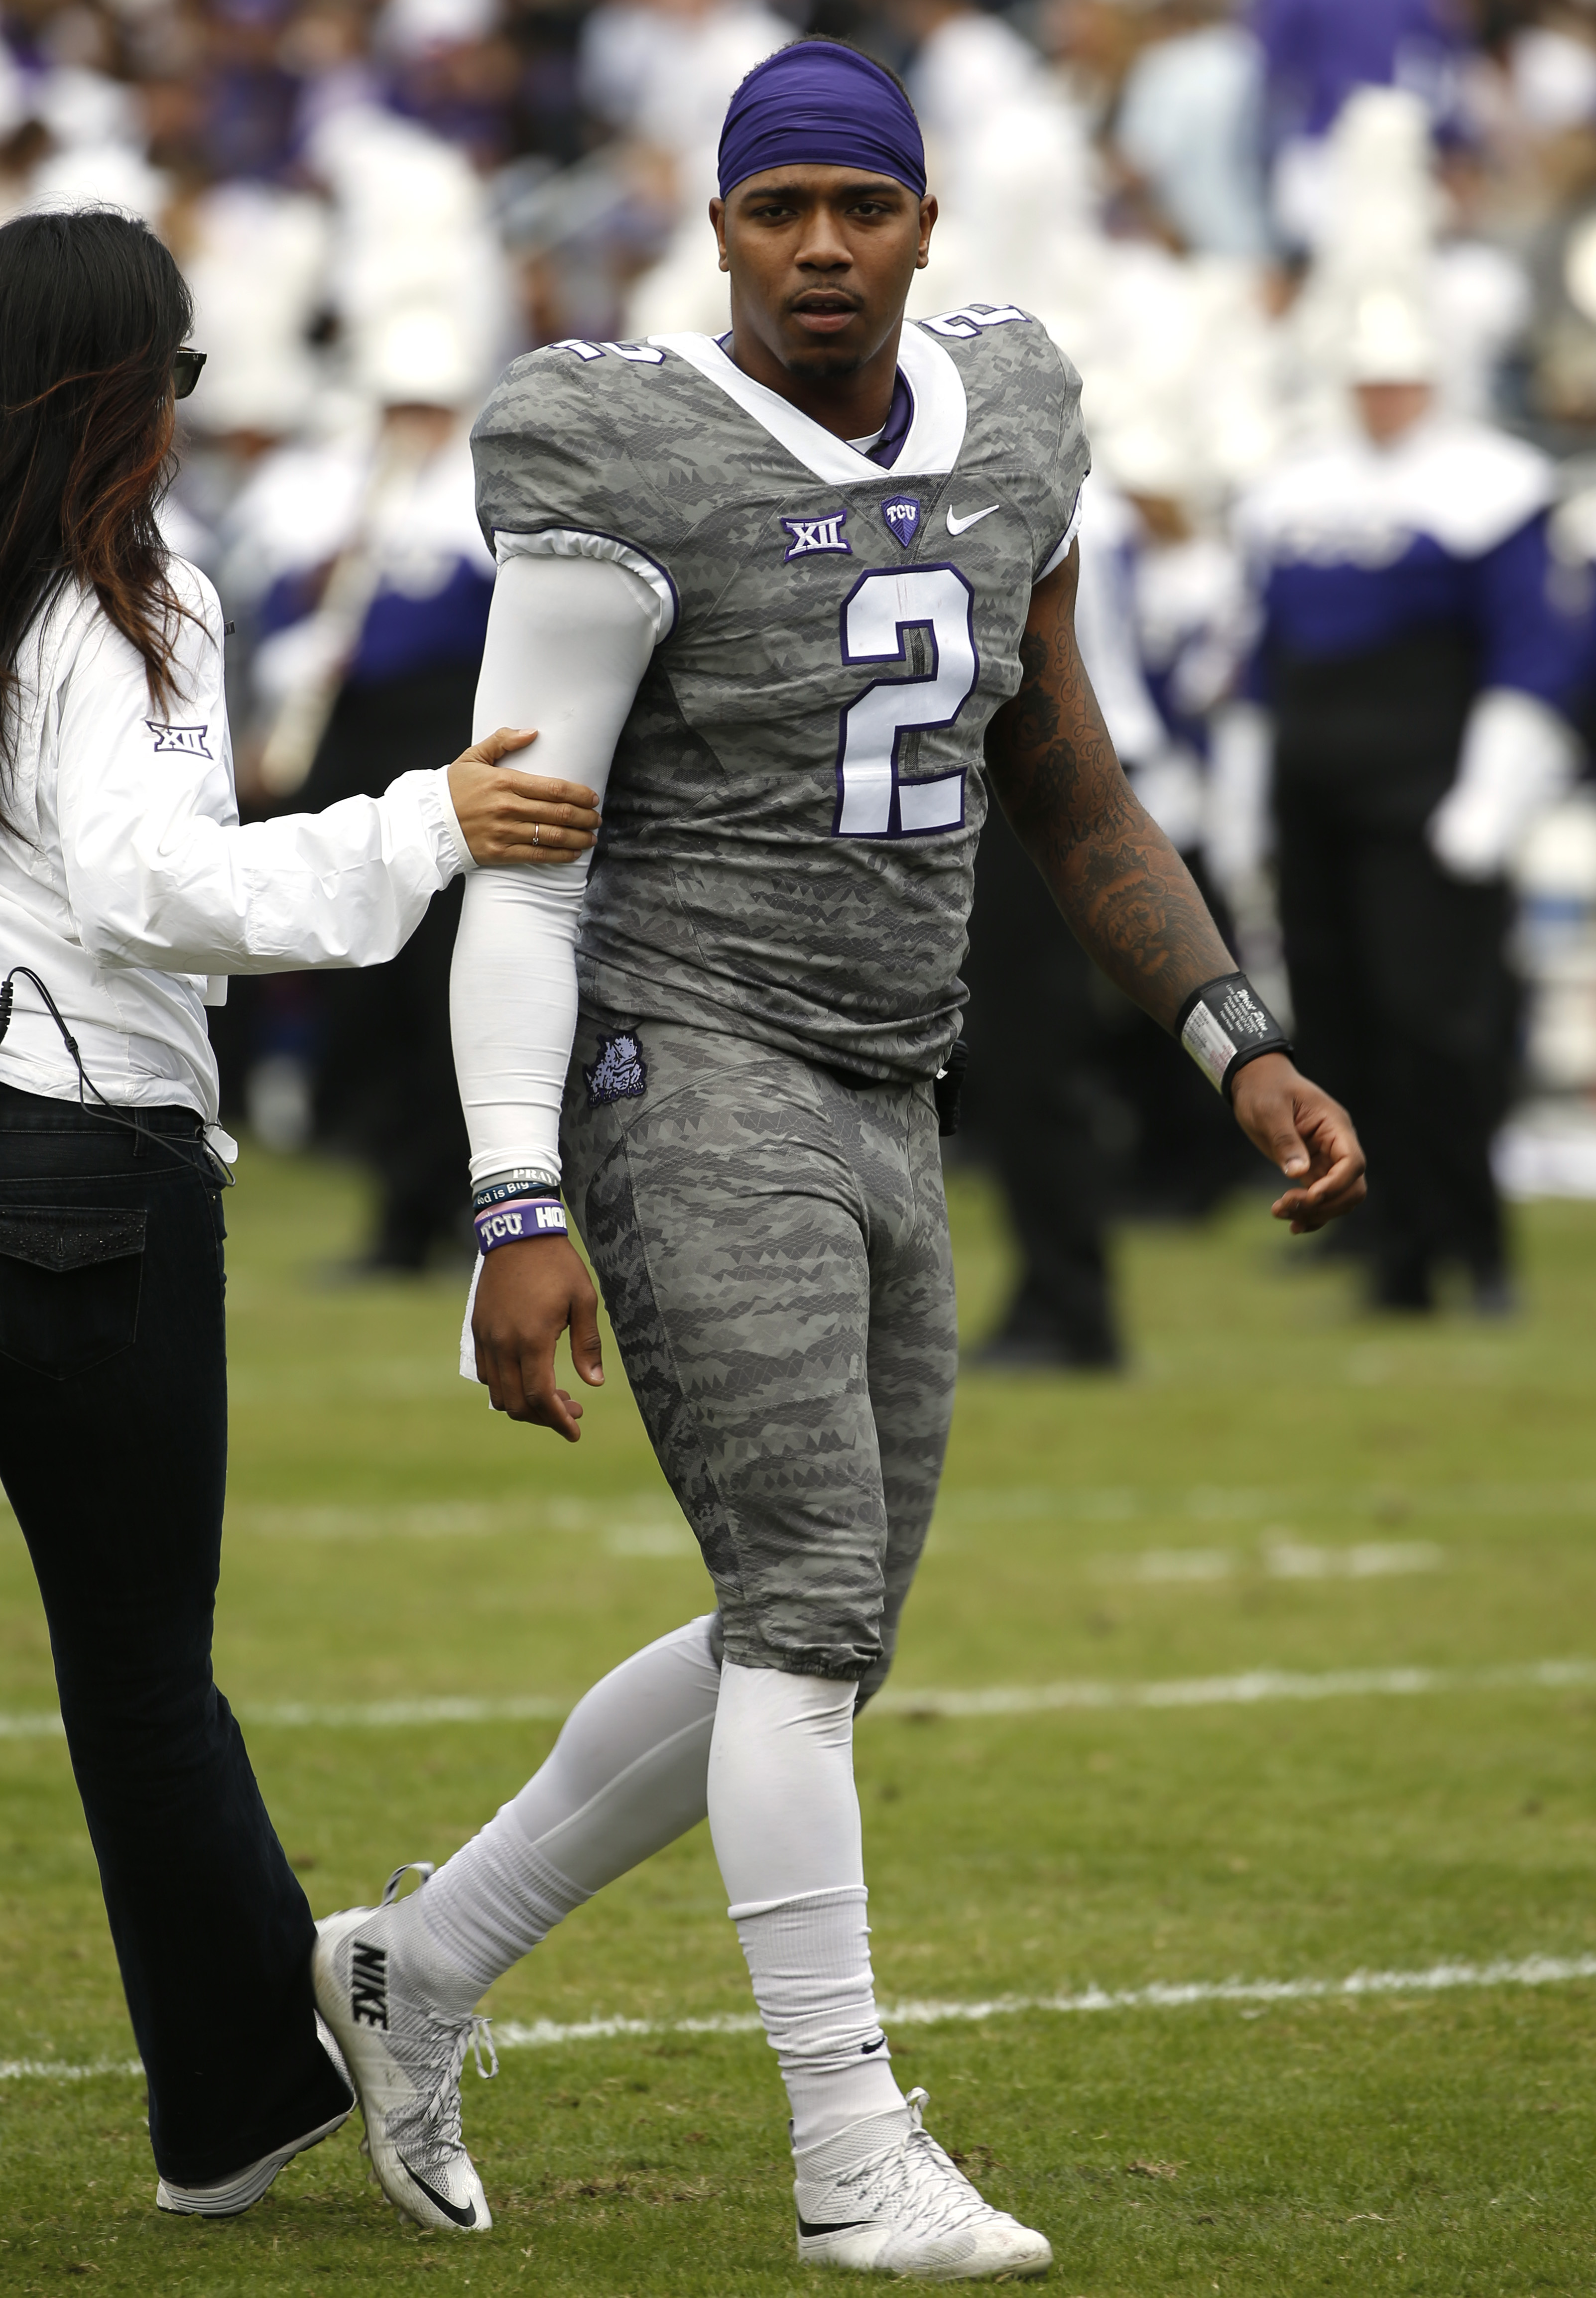 TCU quarterback Trevone Boykin (2) leaves field following the first half against Kansas in of an NCAA college football game Saturday, Nov. 14, 2015, in Fort Worth, Texas. (AP Photo/Ron Jenkins)